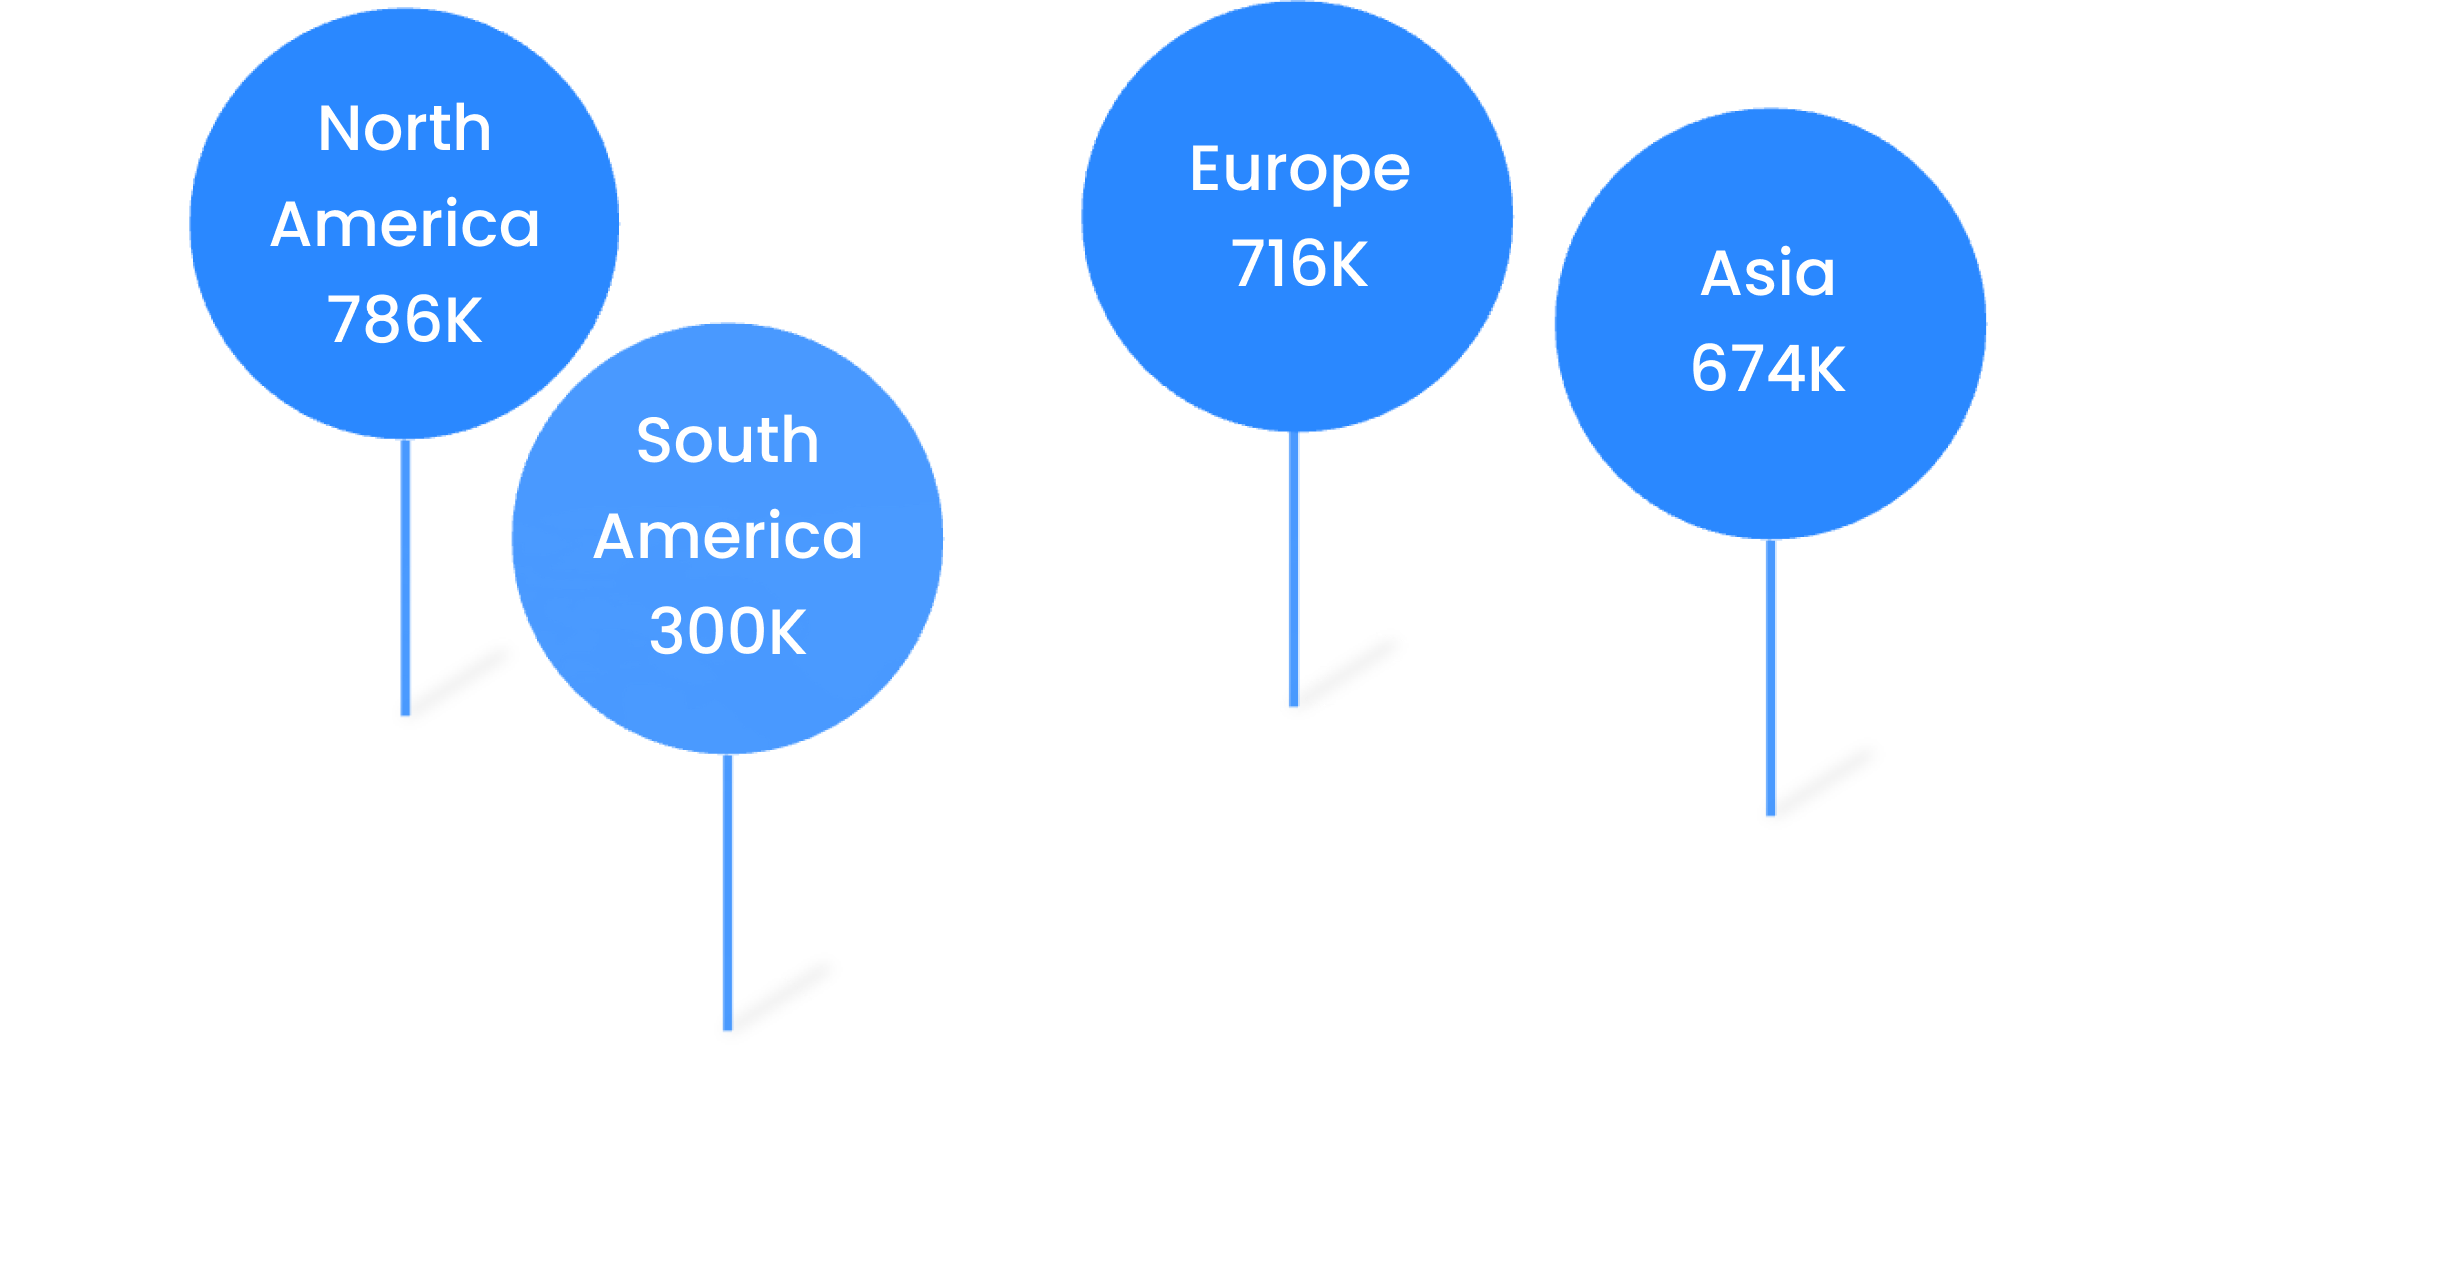 Worldmap showing bitbursts reach on the different continents. North America: 786k, South America: 300k, Europe 716k, Asia 674k